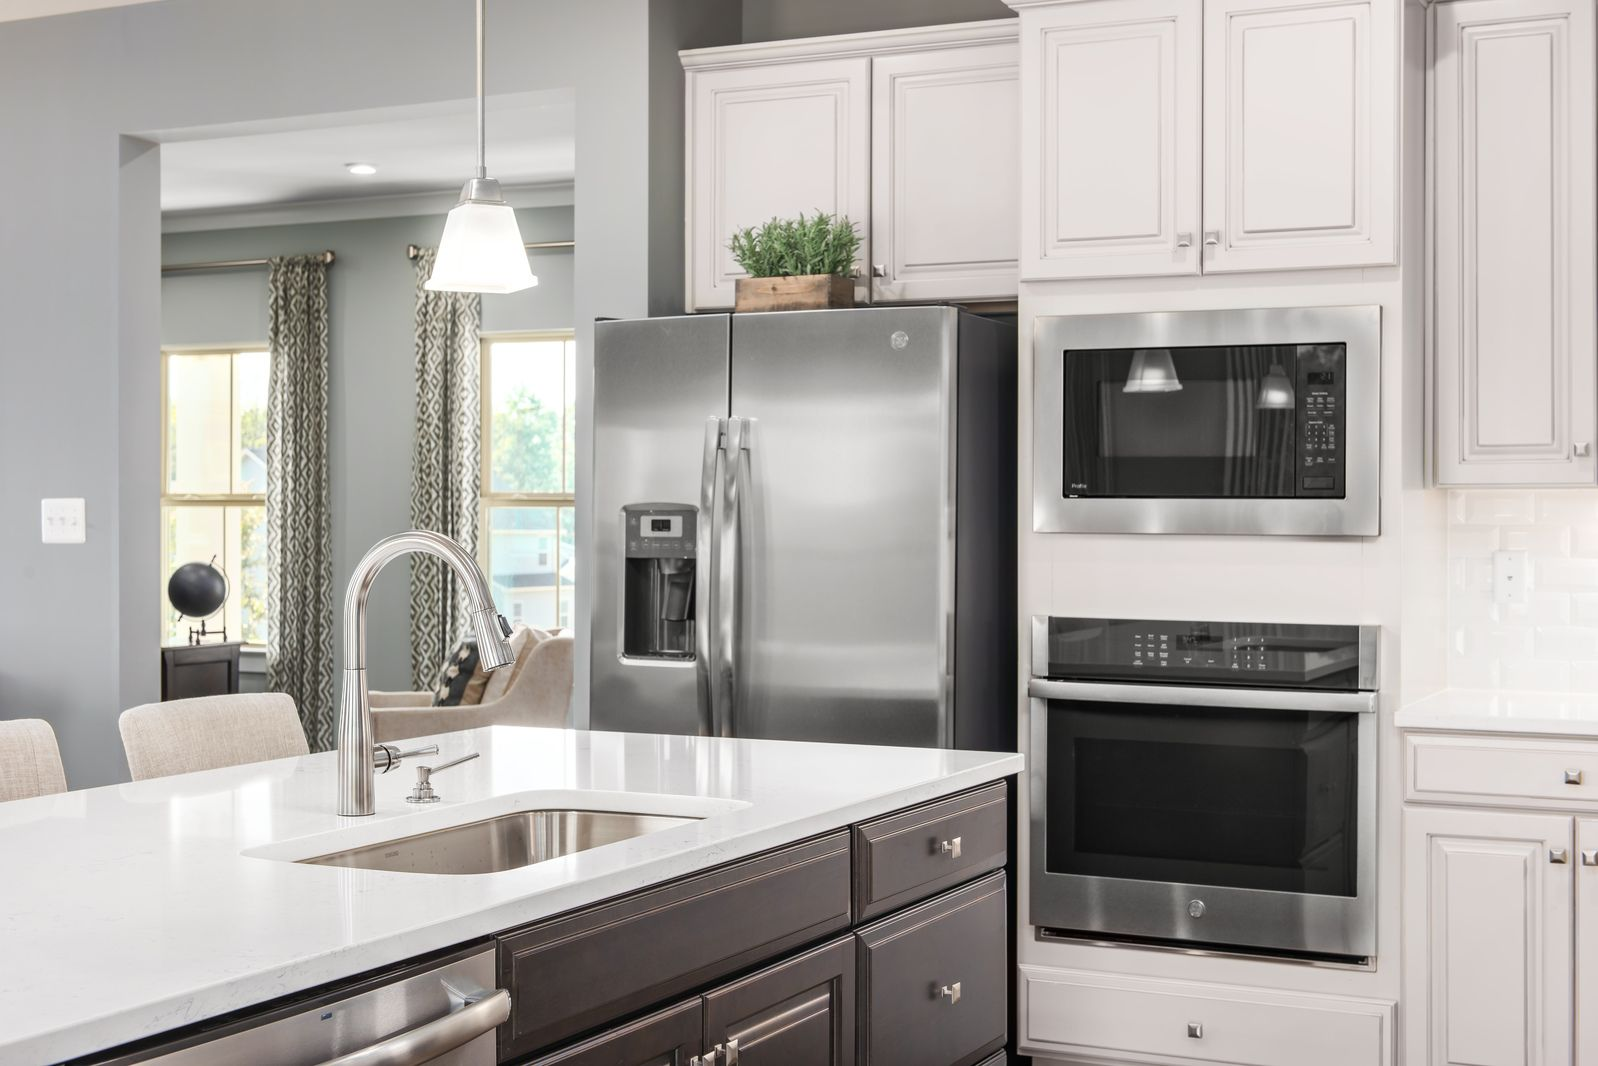 Kitchen featured in the Roanoke By Ryan Homes in Washington, VA